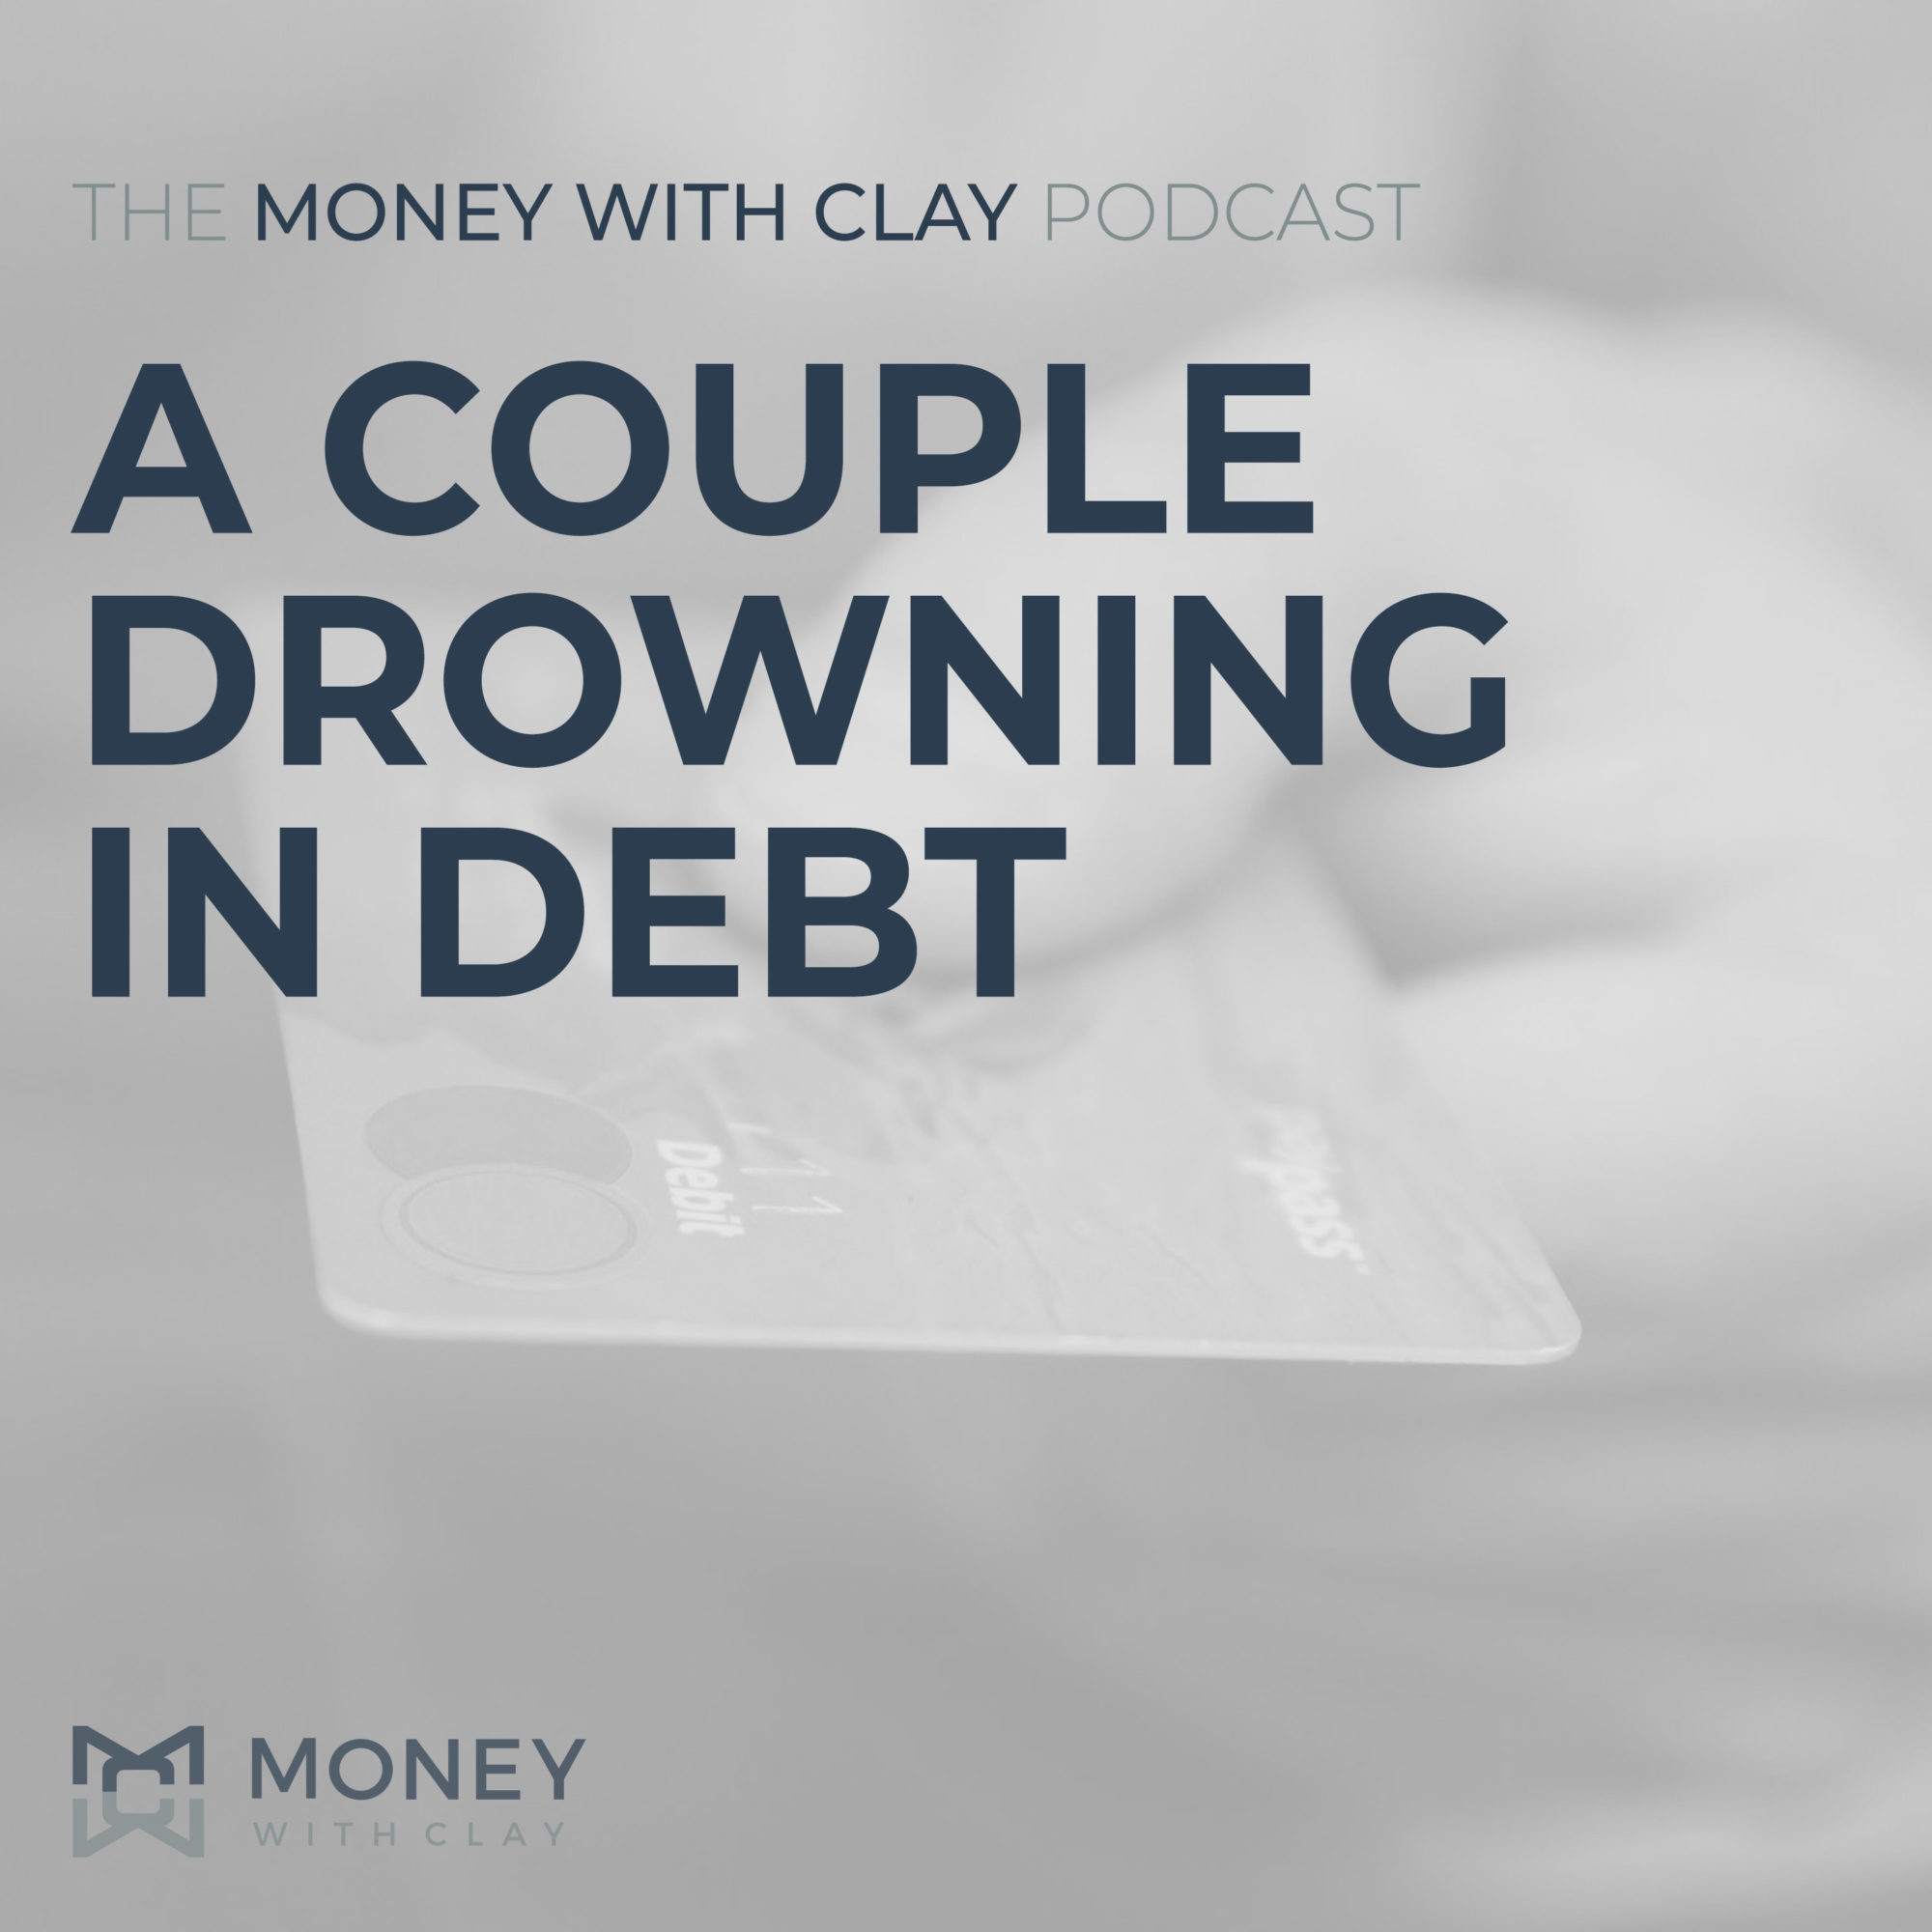 A Couple Drowning in Debt